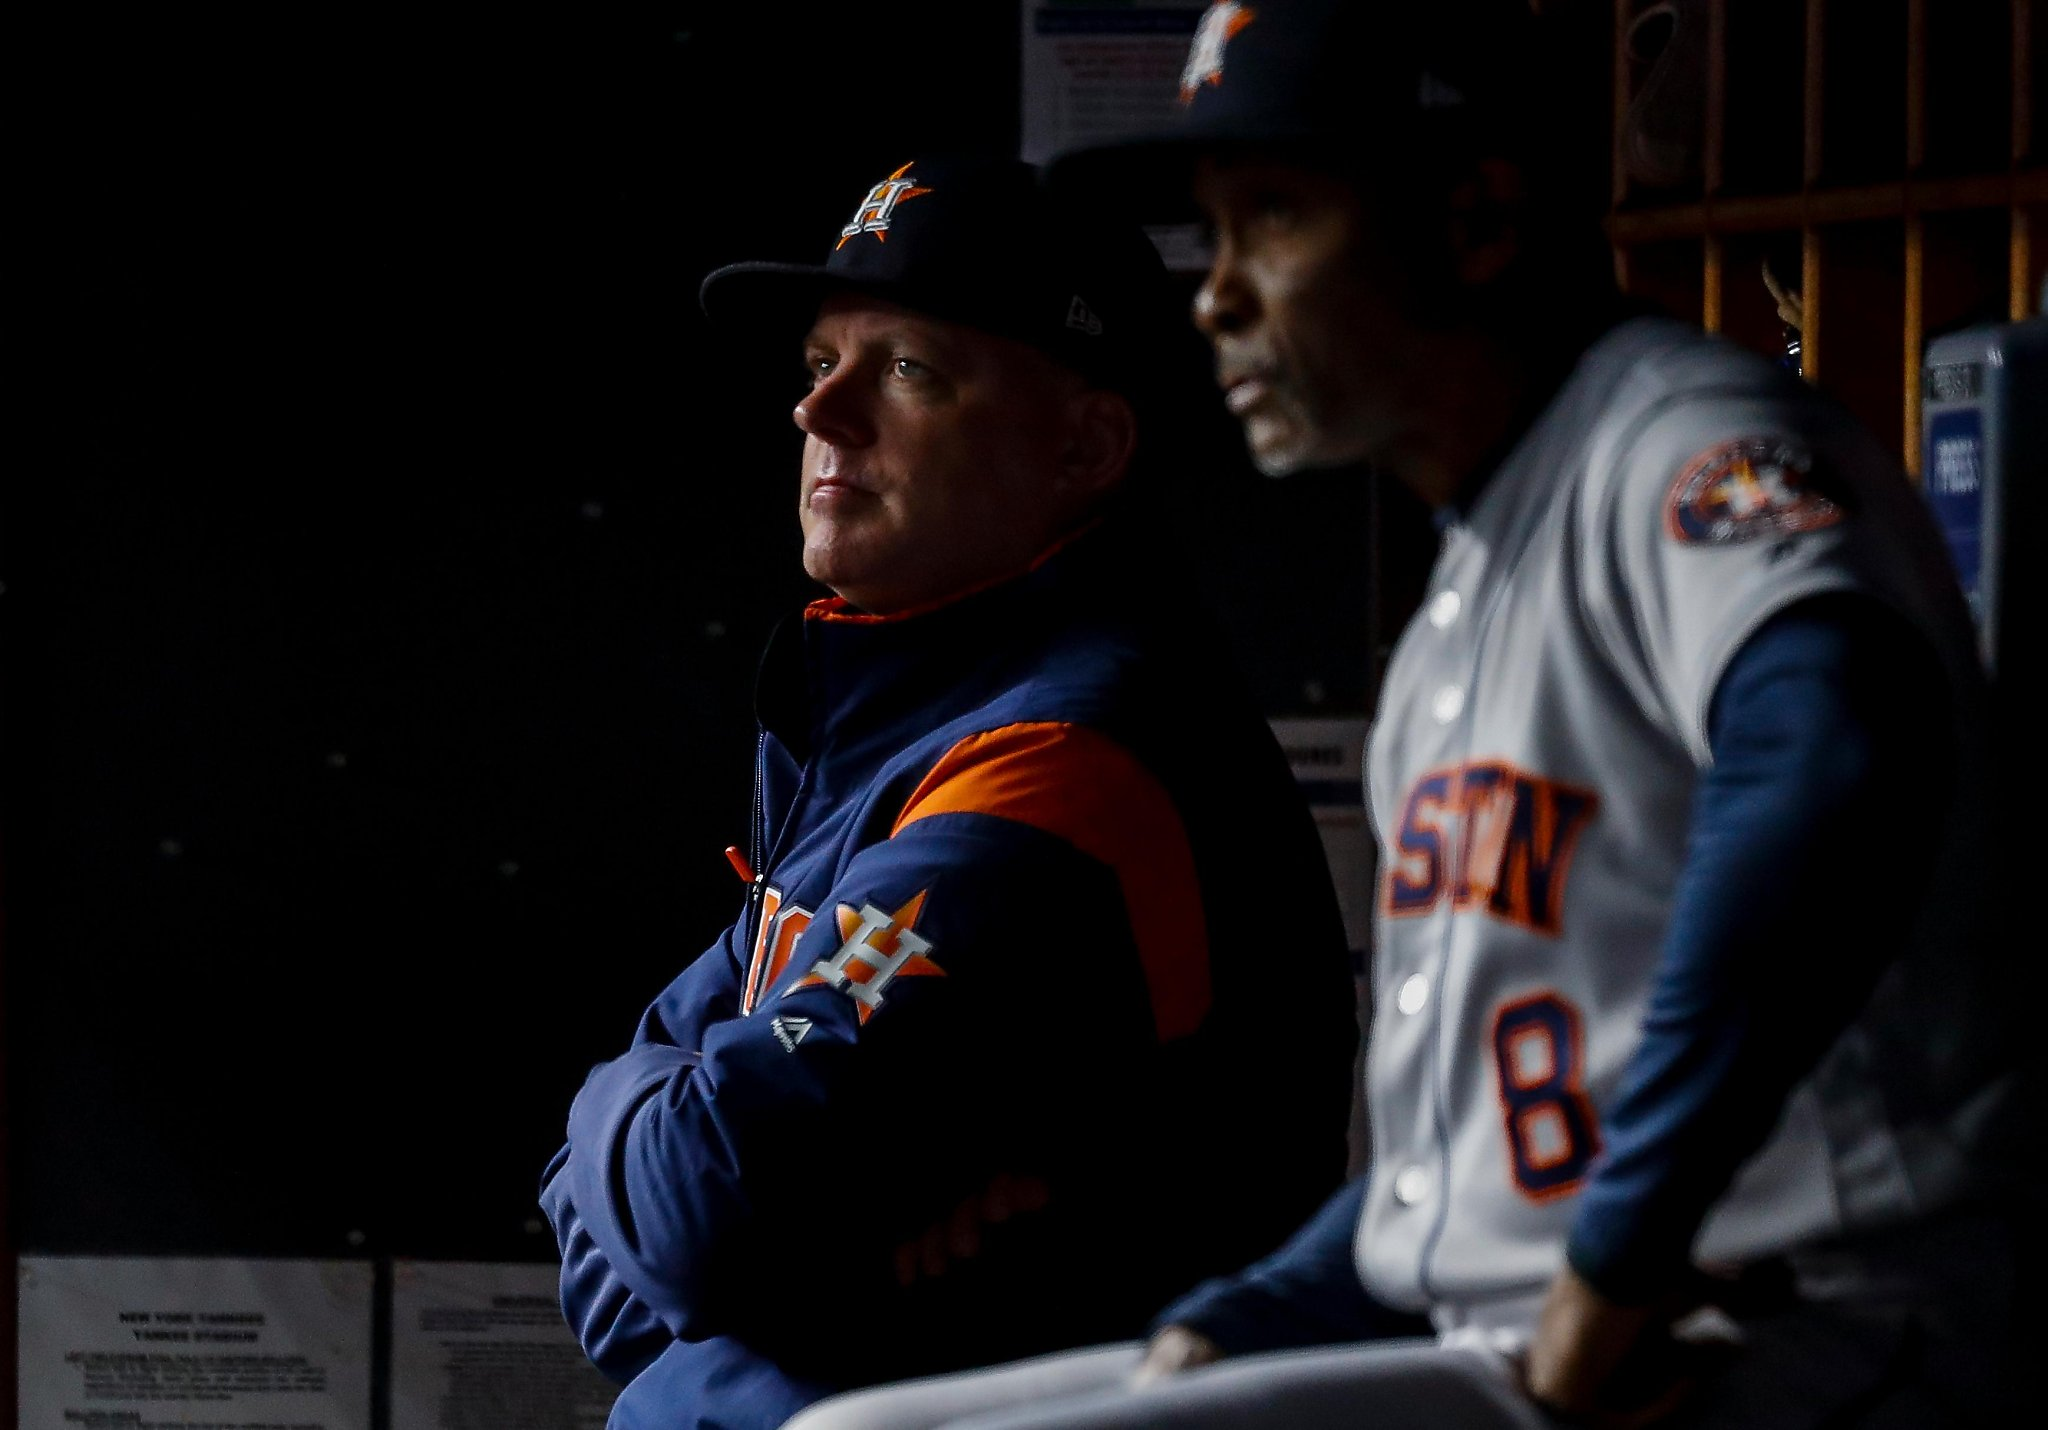 With suspension over, AJ Hinch hired as Tigers' manager